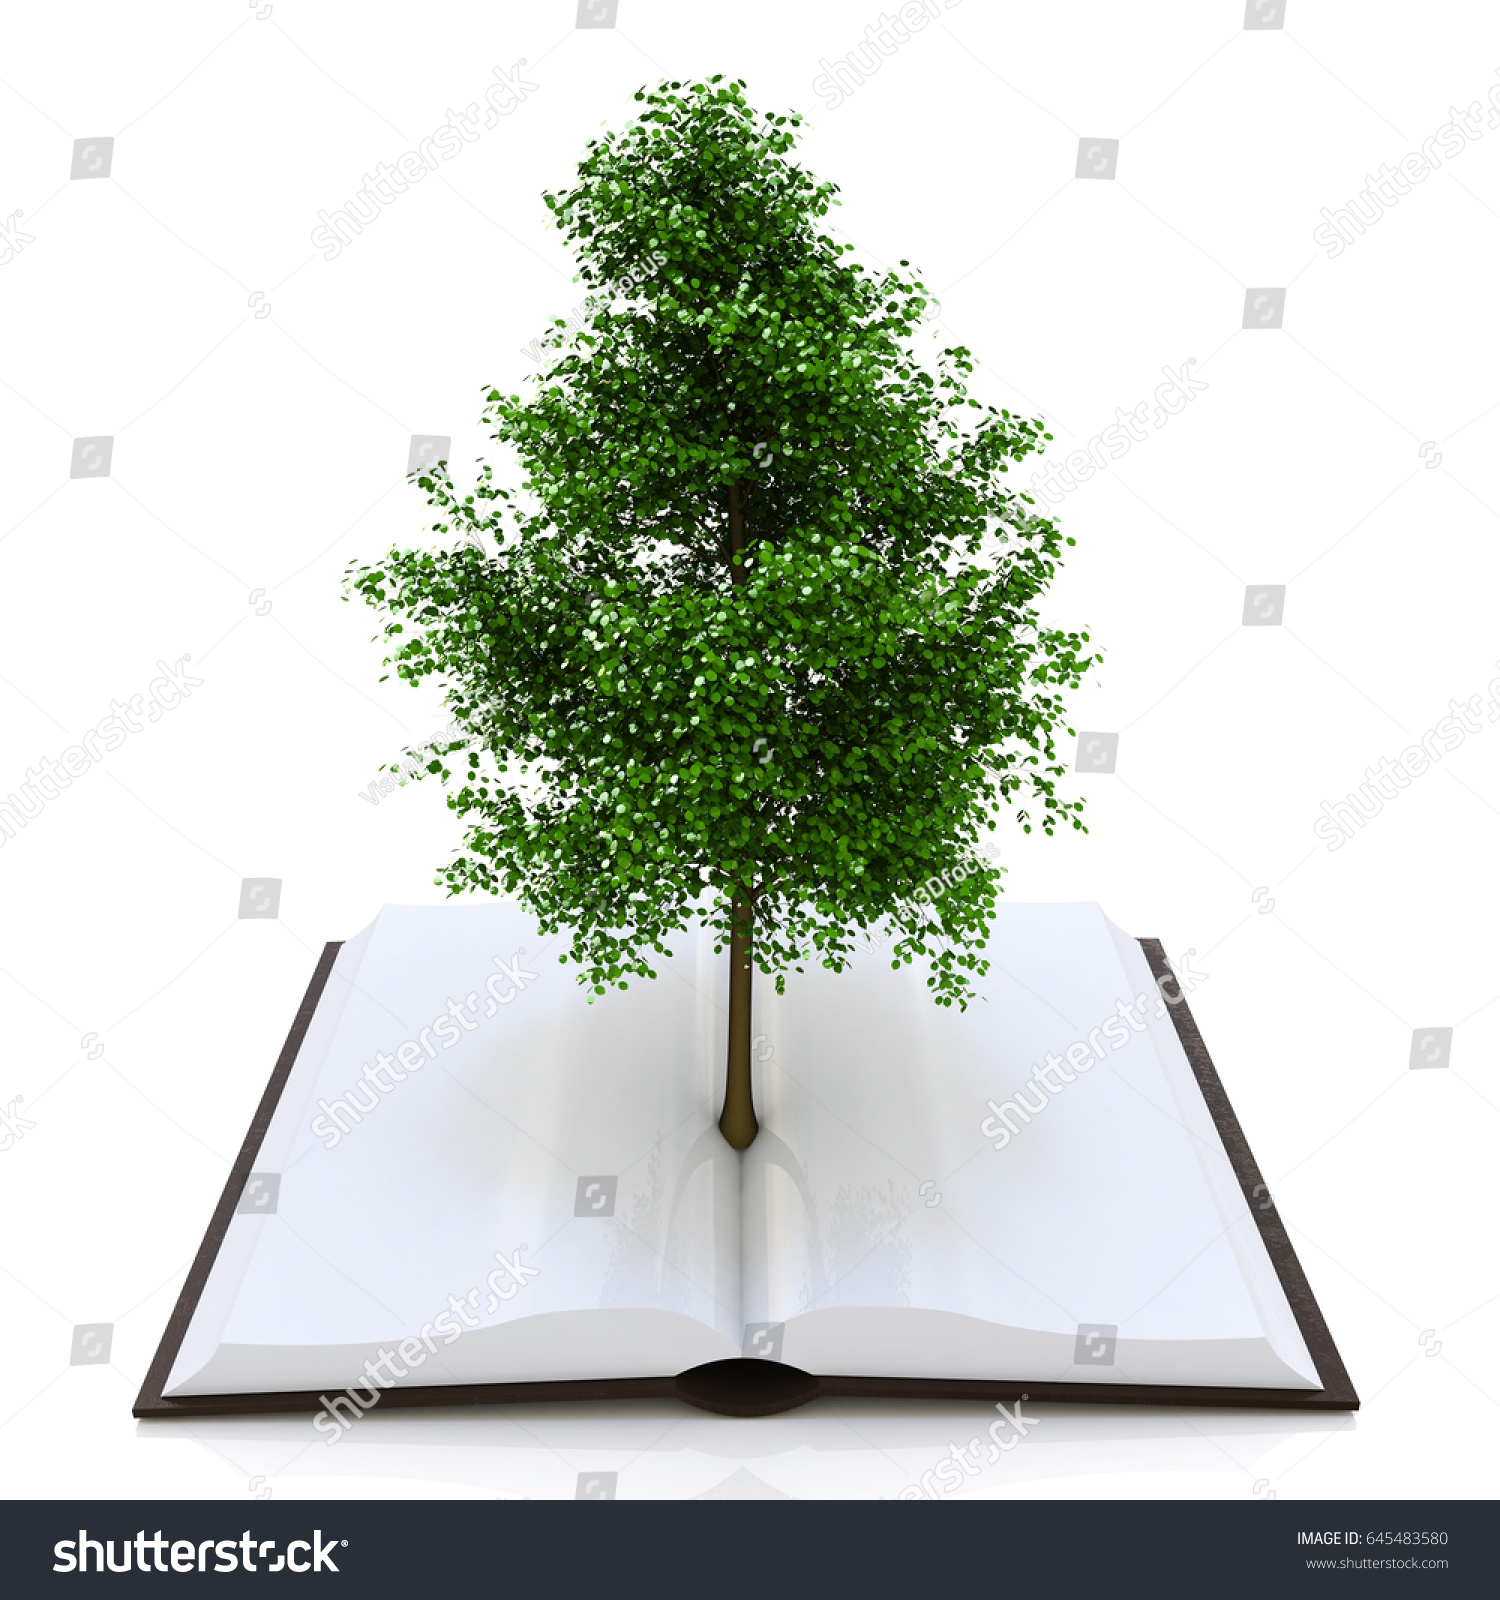 hight resolution of tree growing from an open book alternative recycling concept in the design of access to